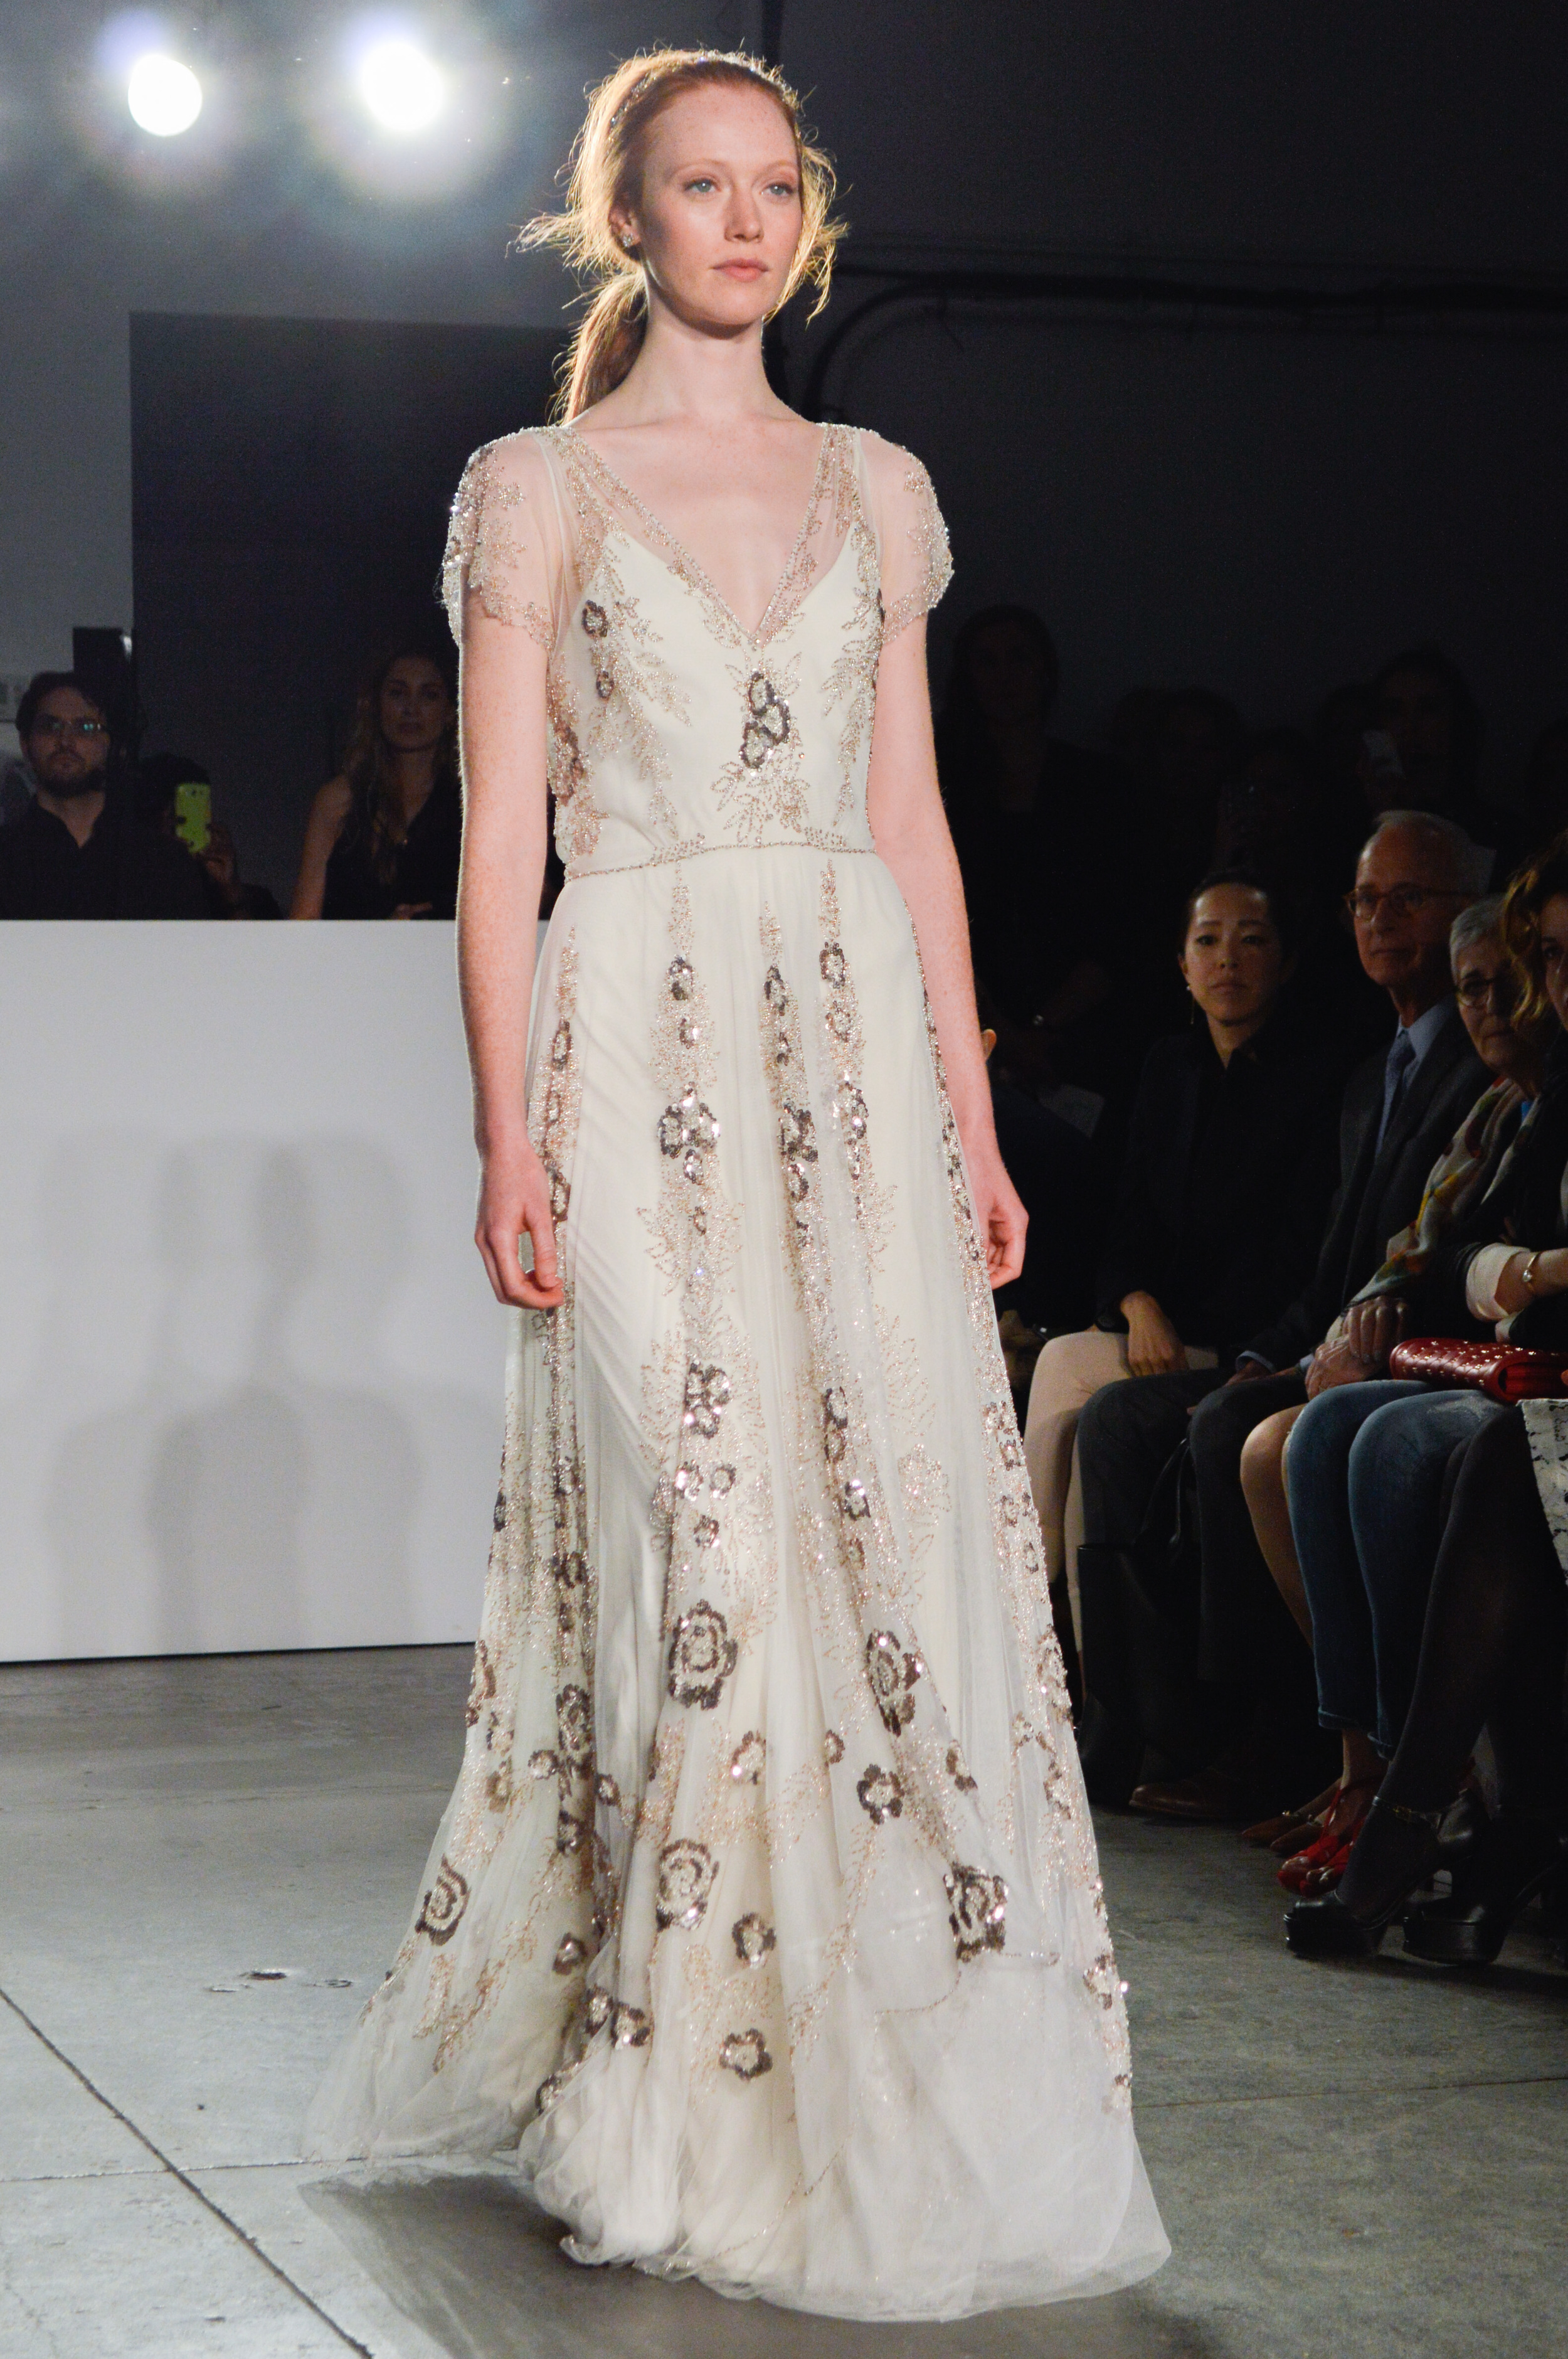 JennyPackham_Bridal Market April 2014-19